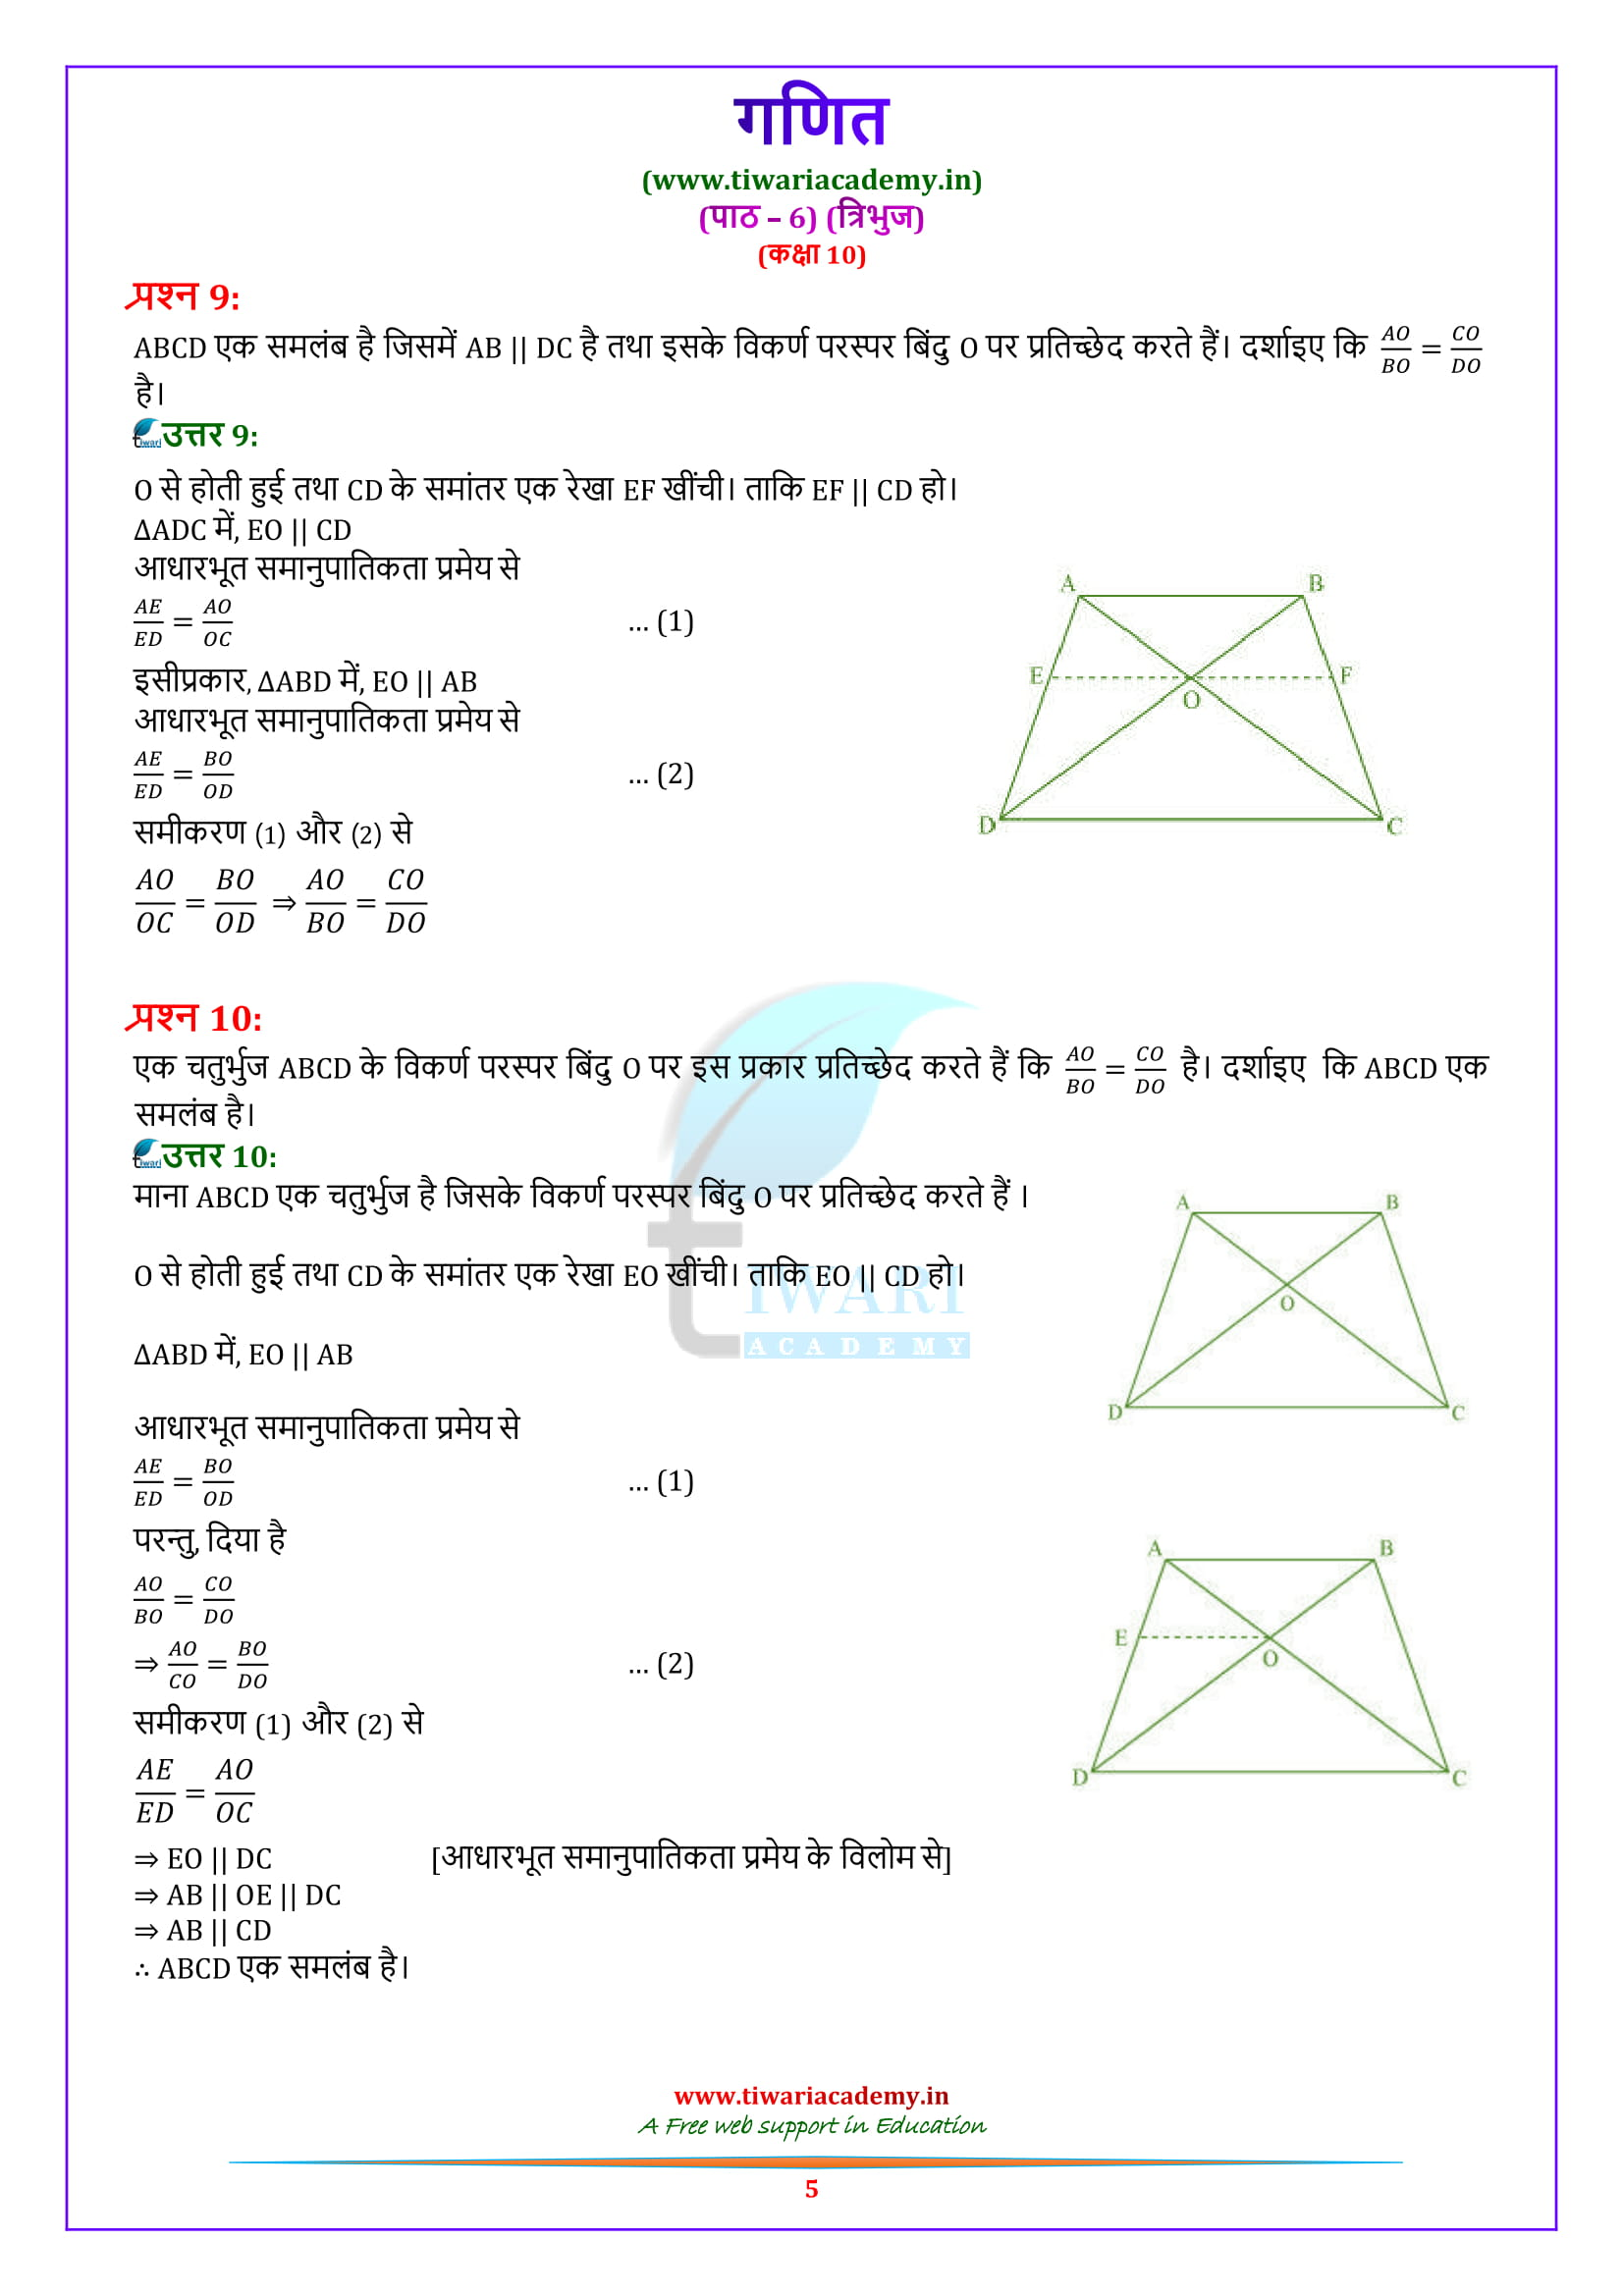 NCERT Solutions for Class 10 Maths Exercise 6.2 all questions answers